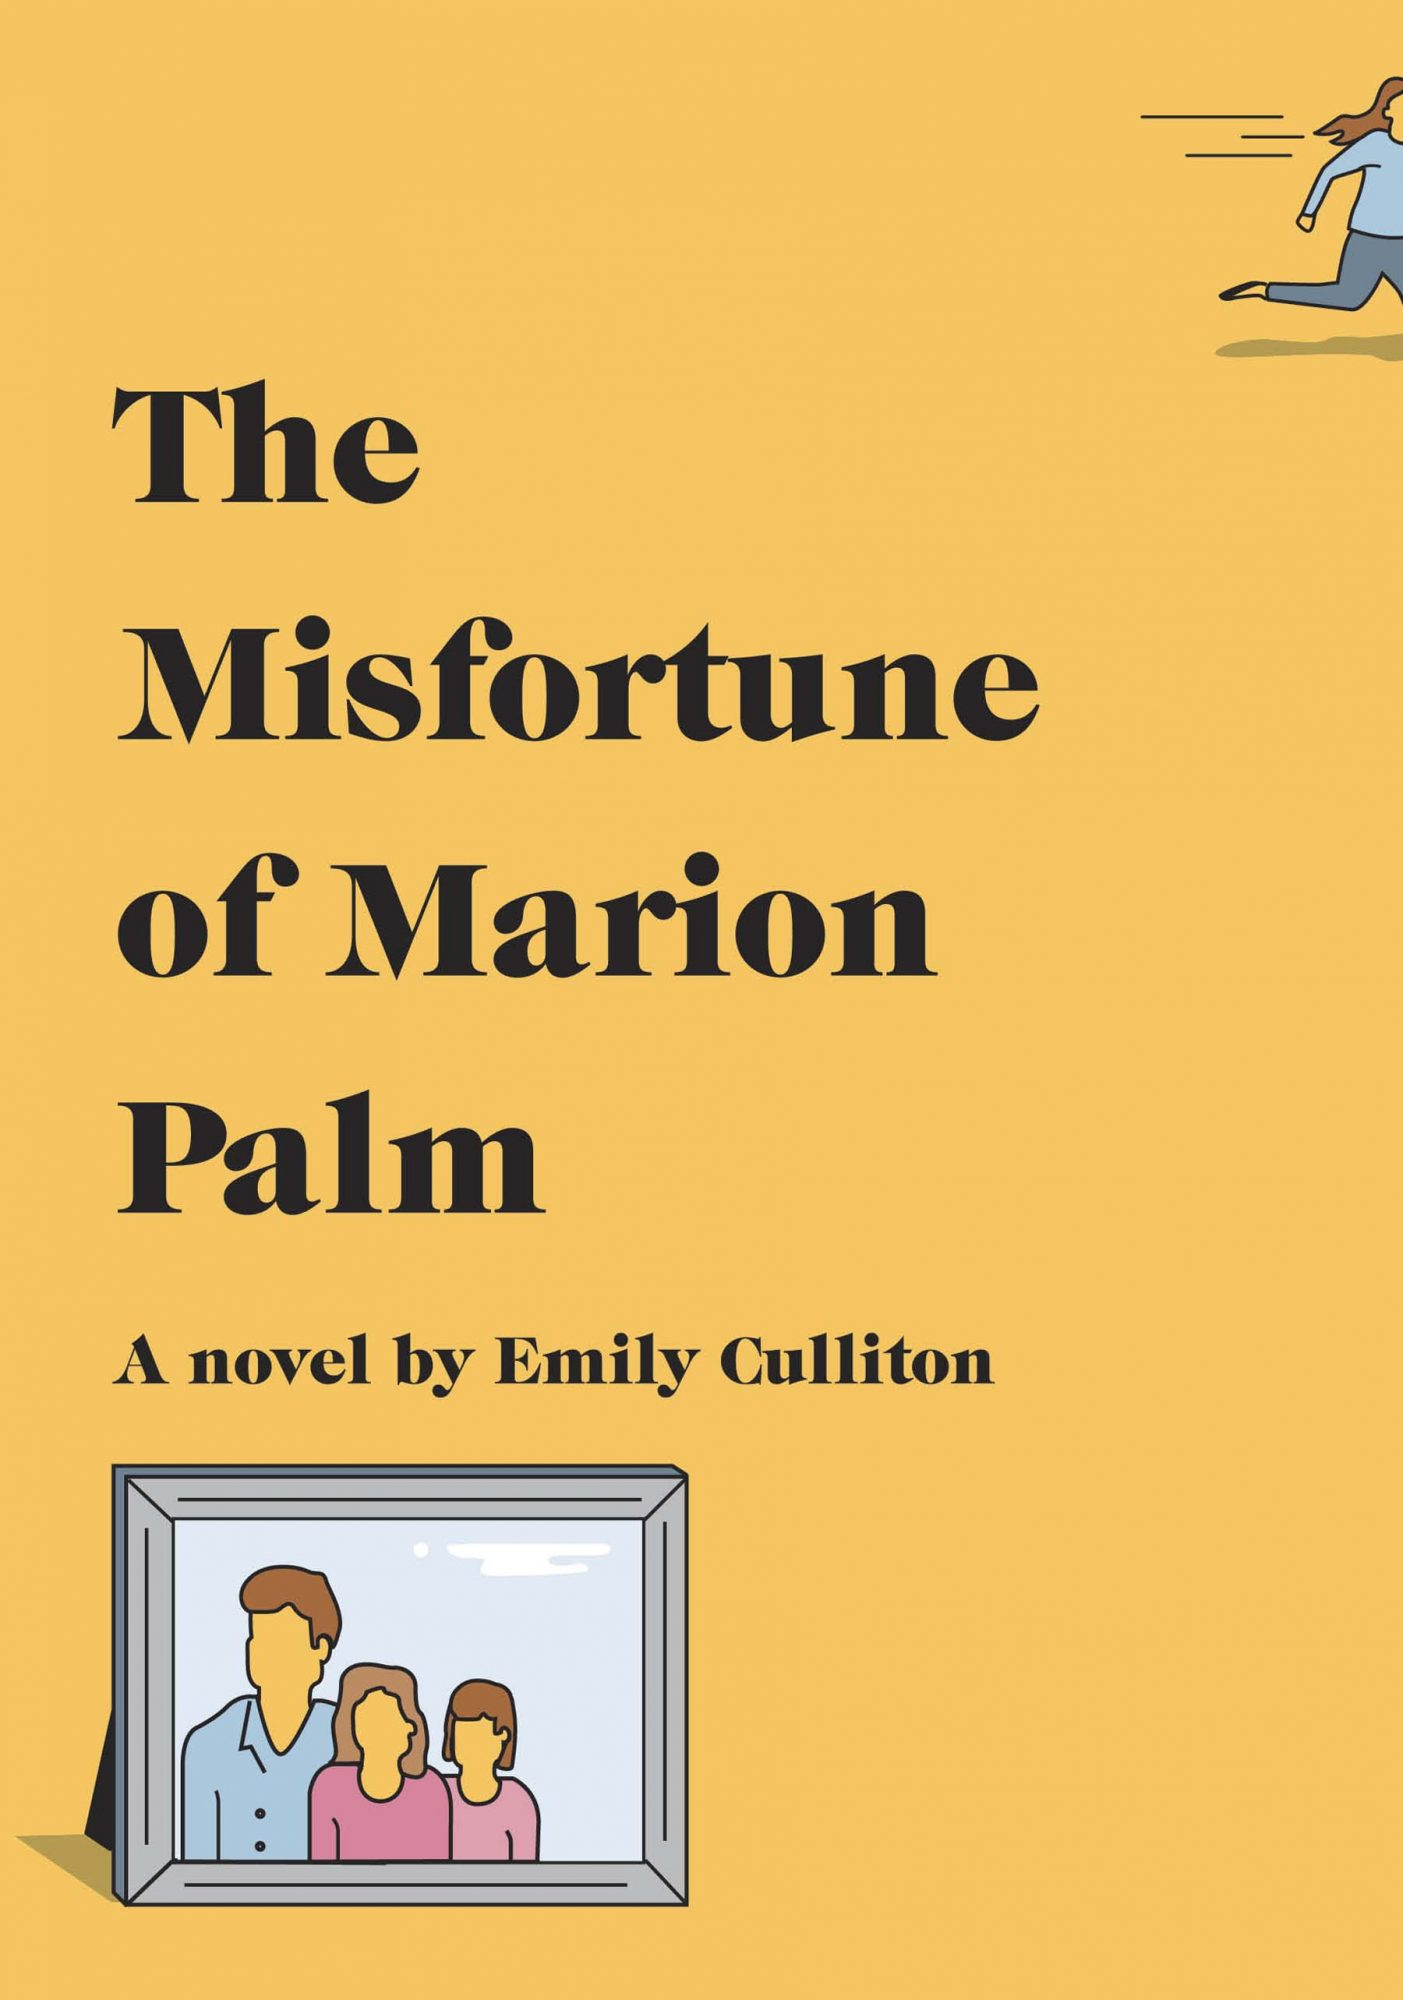 The Misfortune of Marion Palm: A novel (8/08/2017)by Emily Culliton